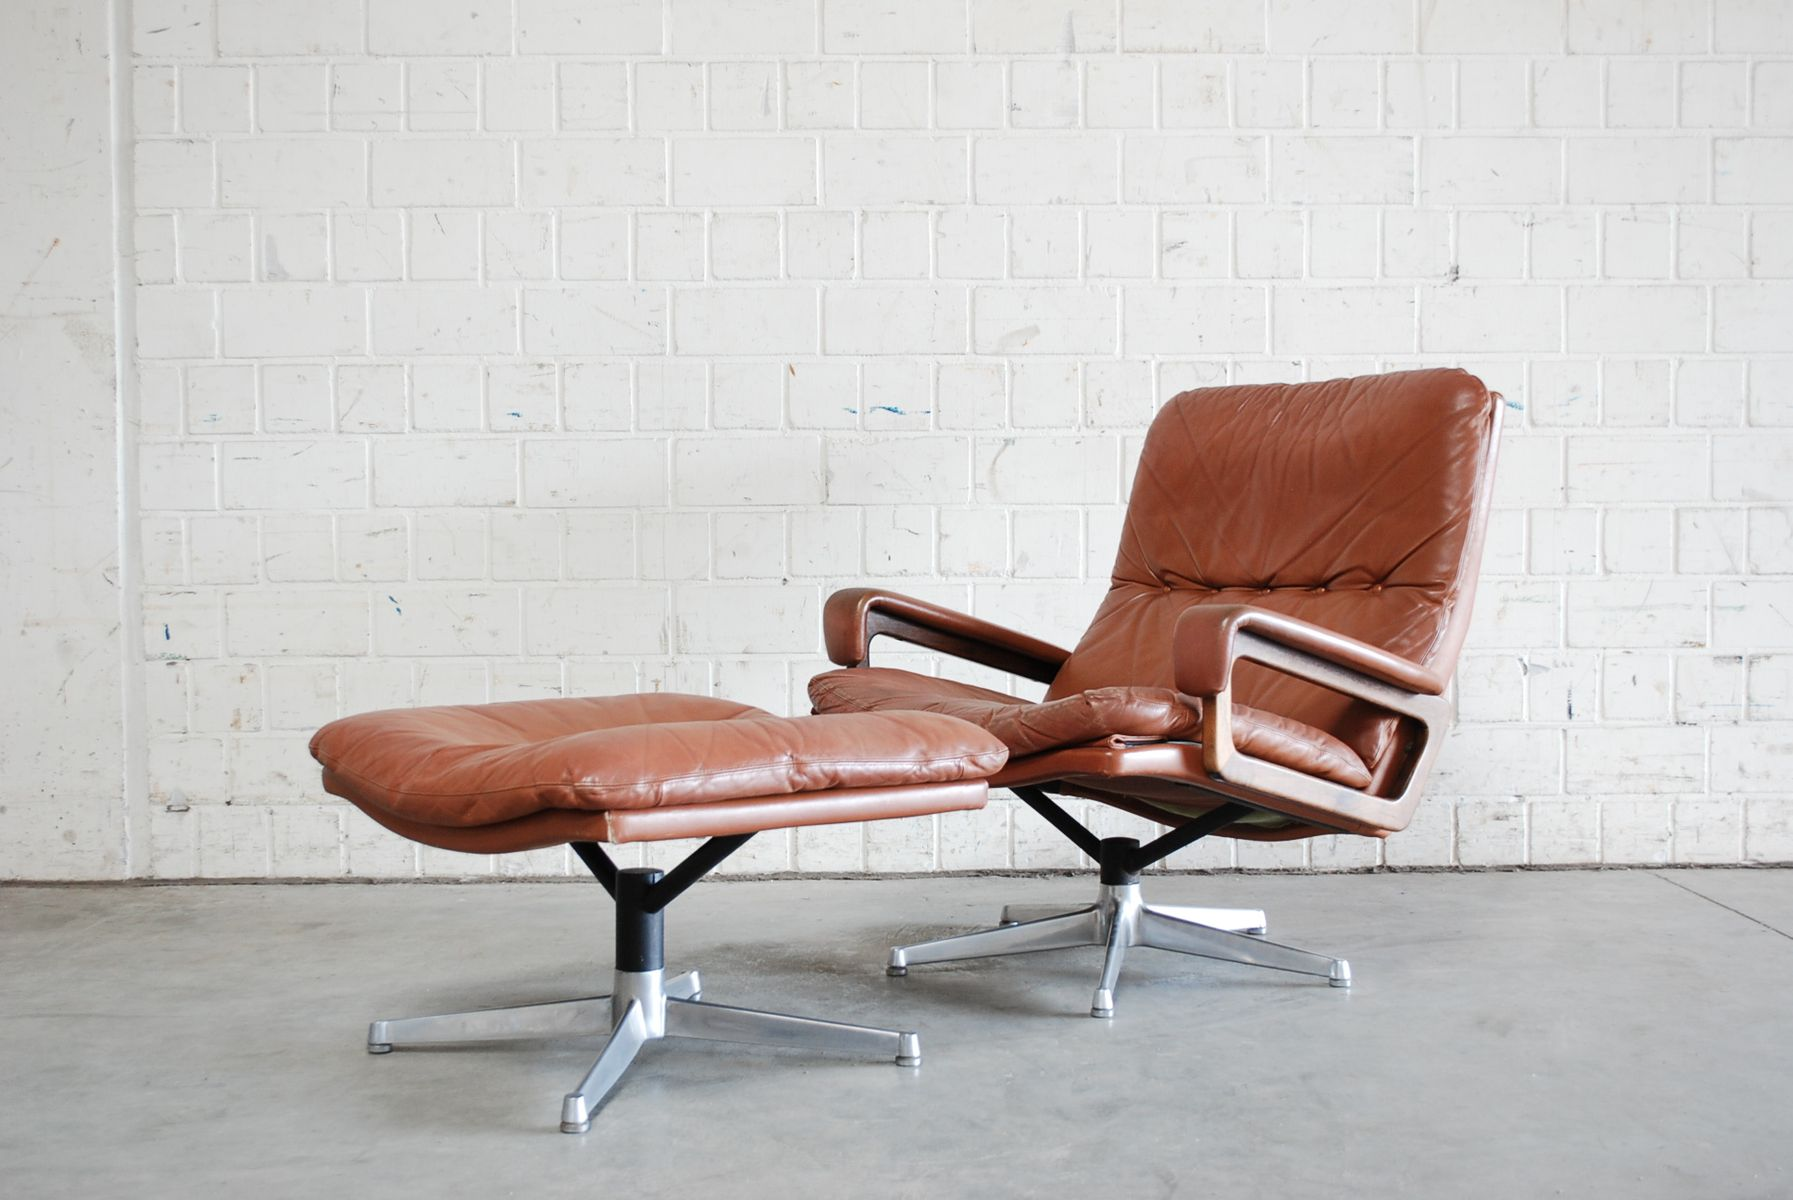 Vintage leather swivel chair - Vintage Swivel Chair With Ottoman By Andr Vandenbeuck For Str Ssle For Sale At Pamono